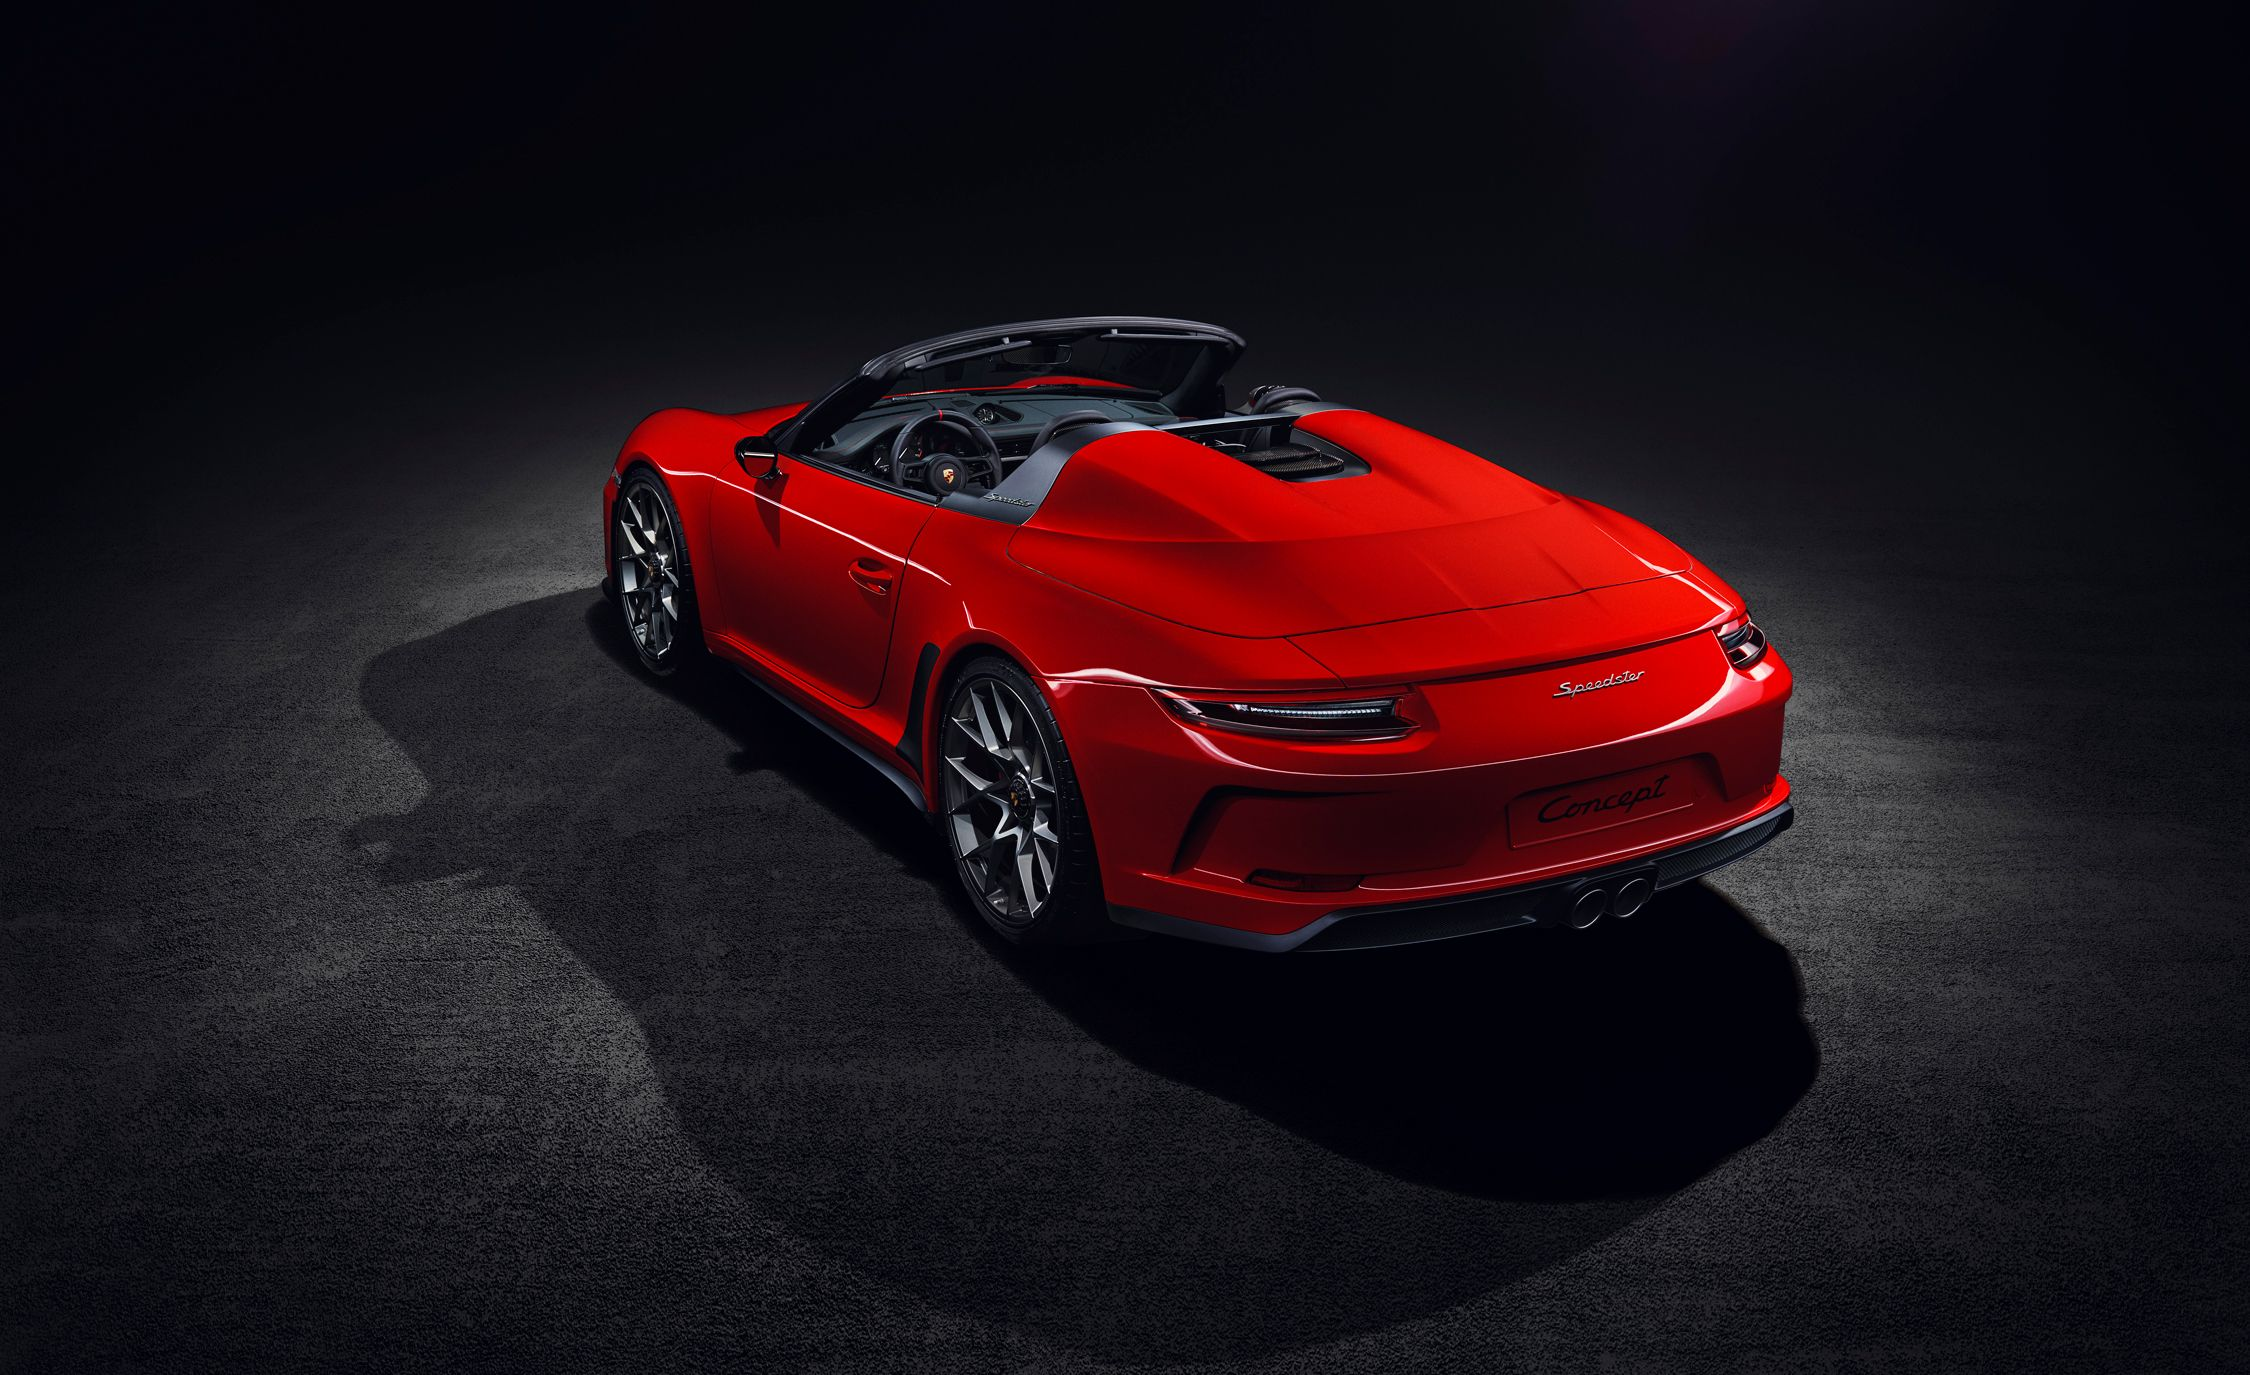 Porsche 911 Speedster Confirmed For Production As A Send Off For The 991